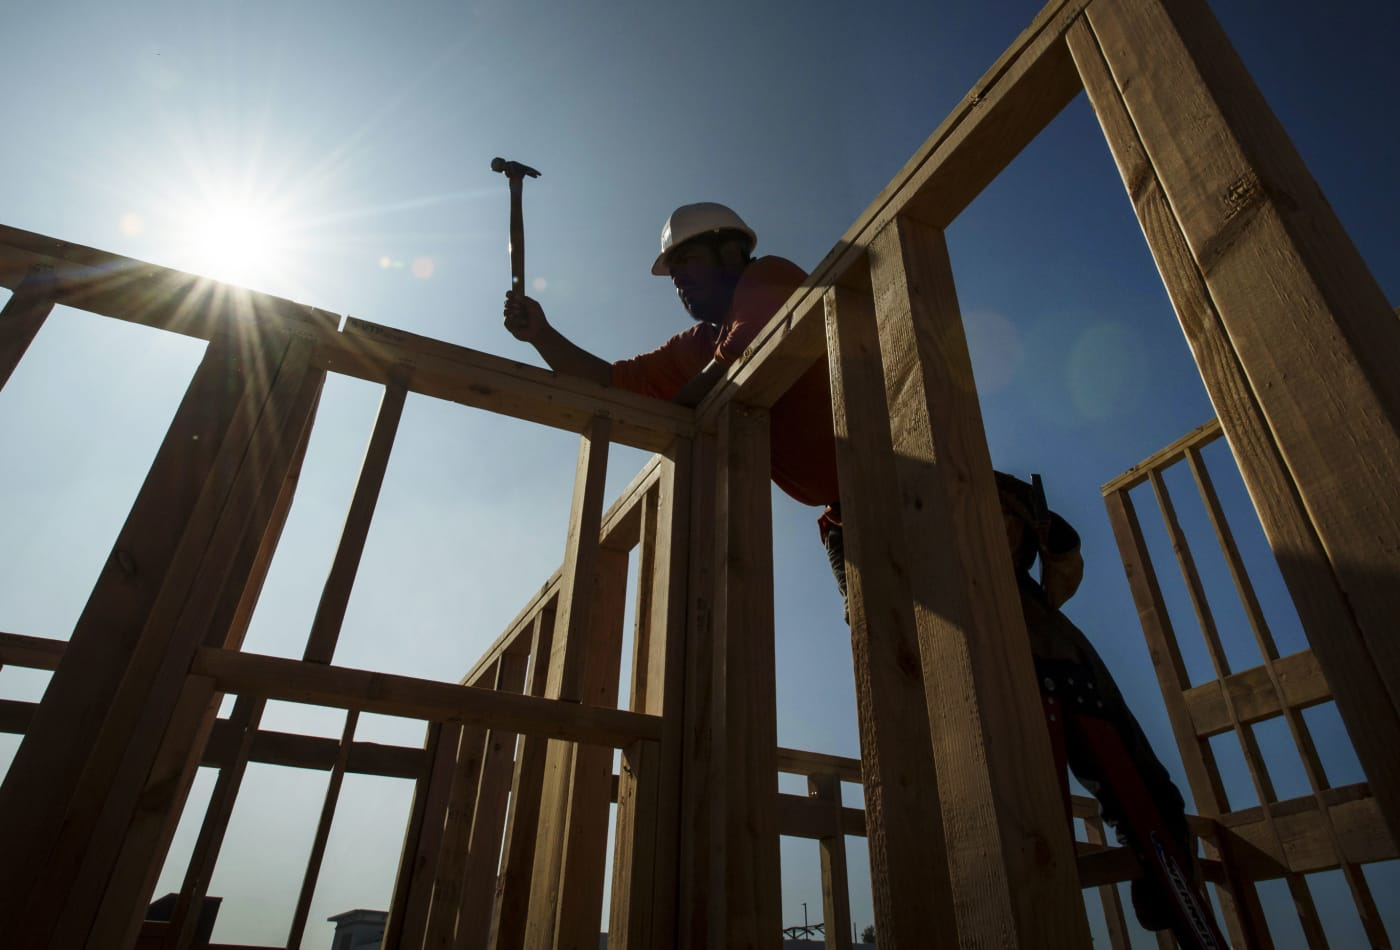 Homebuilder optimism slips slightly to start 2020 but is still high